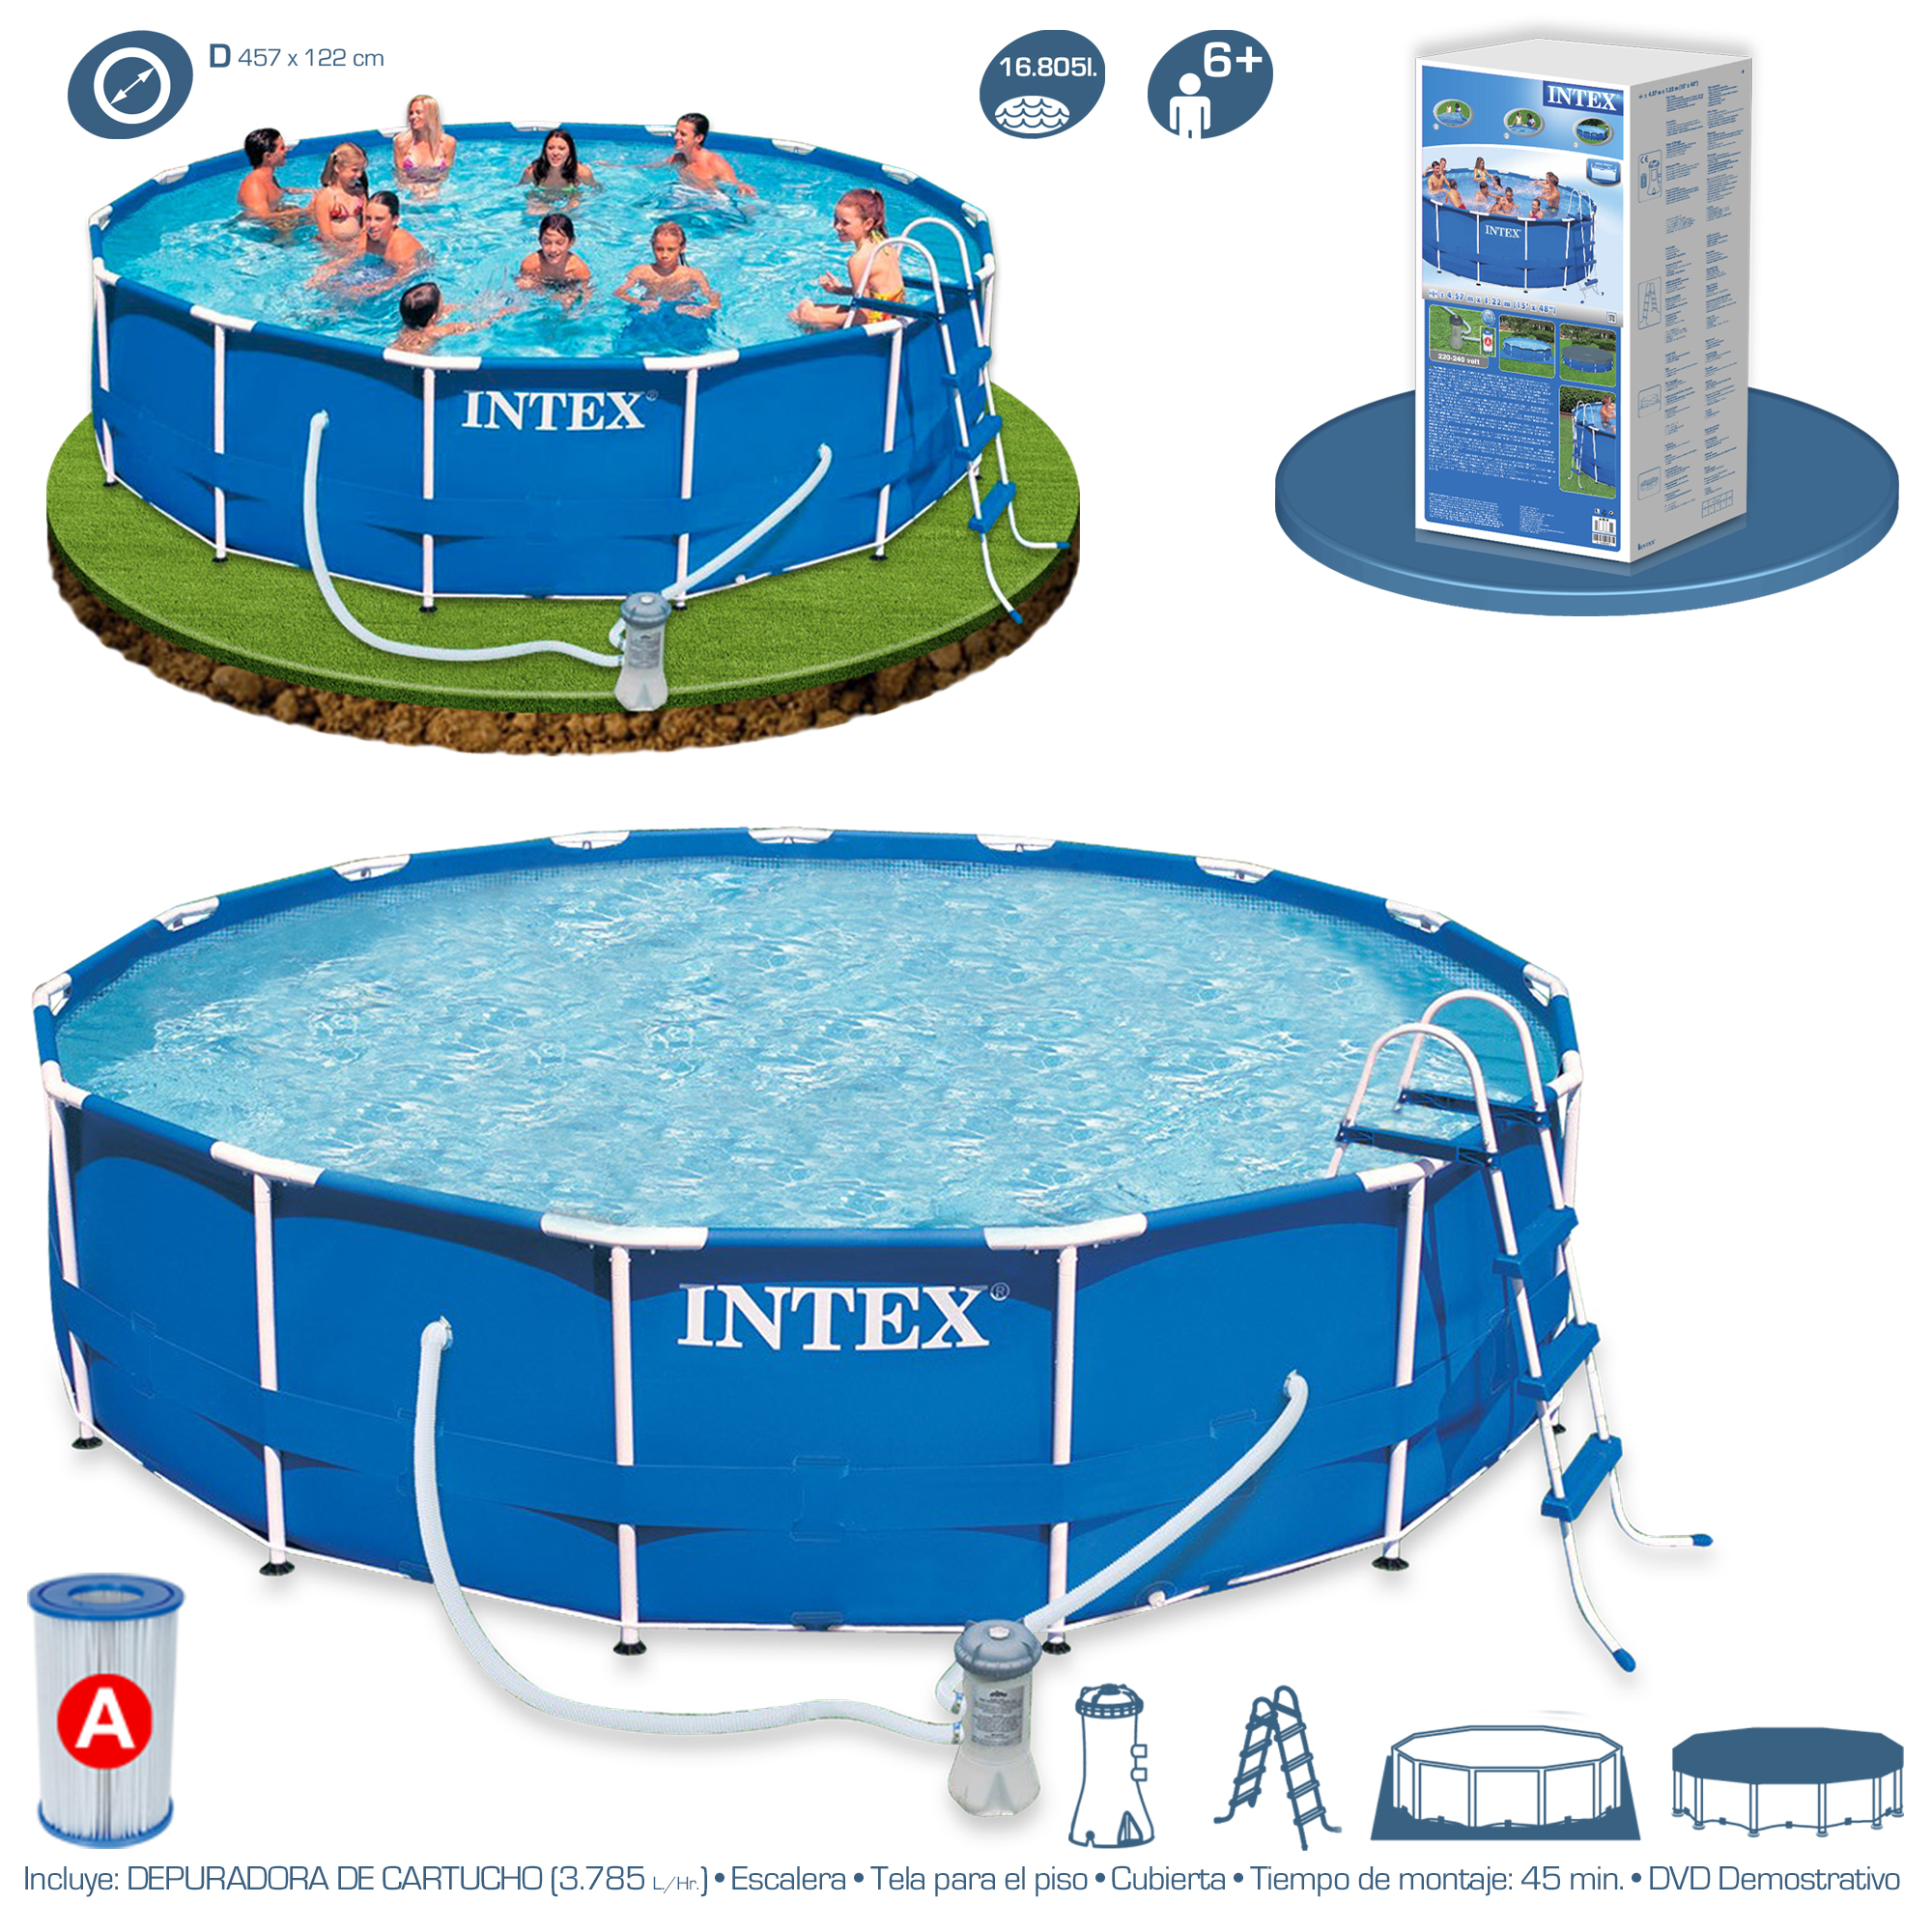 Intex Piscinas Acessorios Piscina Intex Metal Frame 457x122 28236 Piscinas